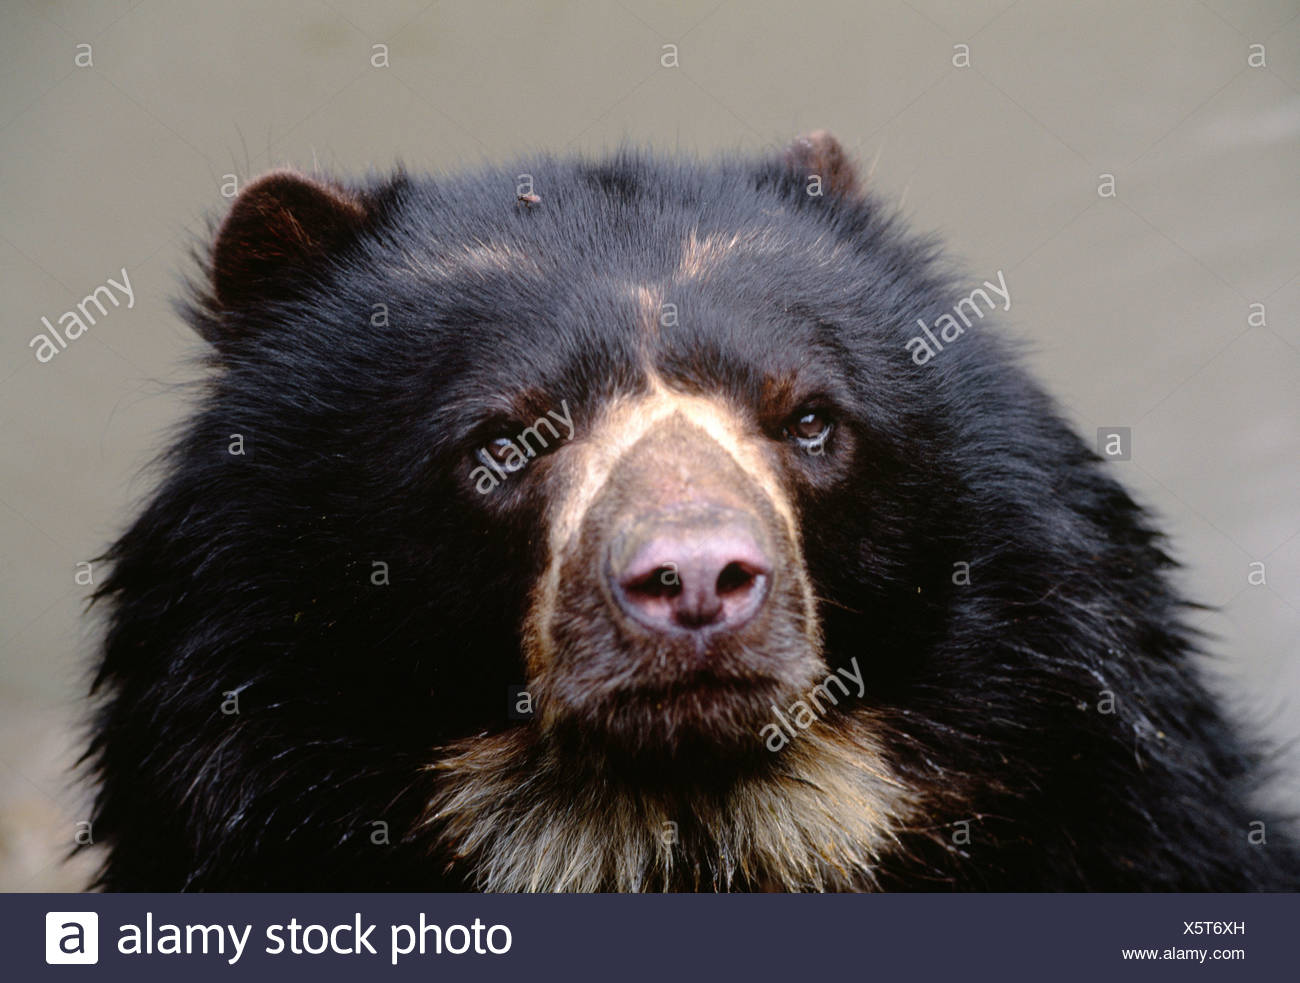 Spectacled Bear, La Planada Wildlife Reserve, Colombia - Stock Image